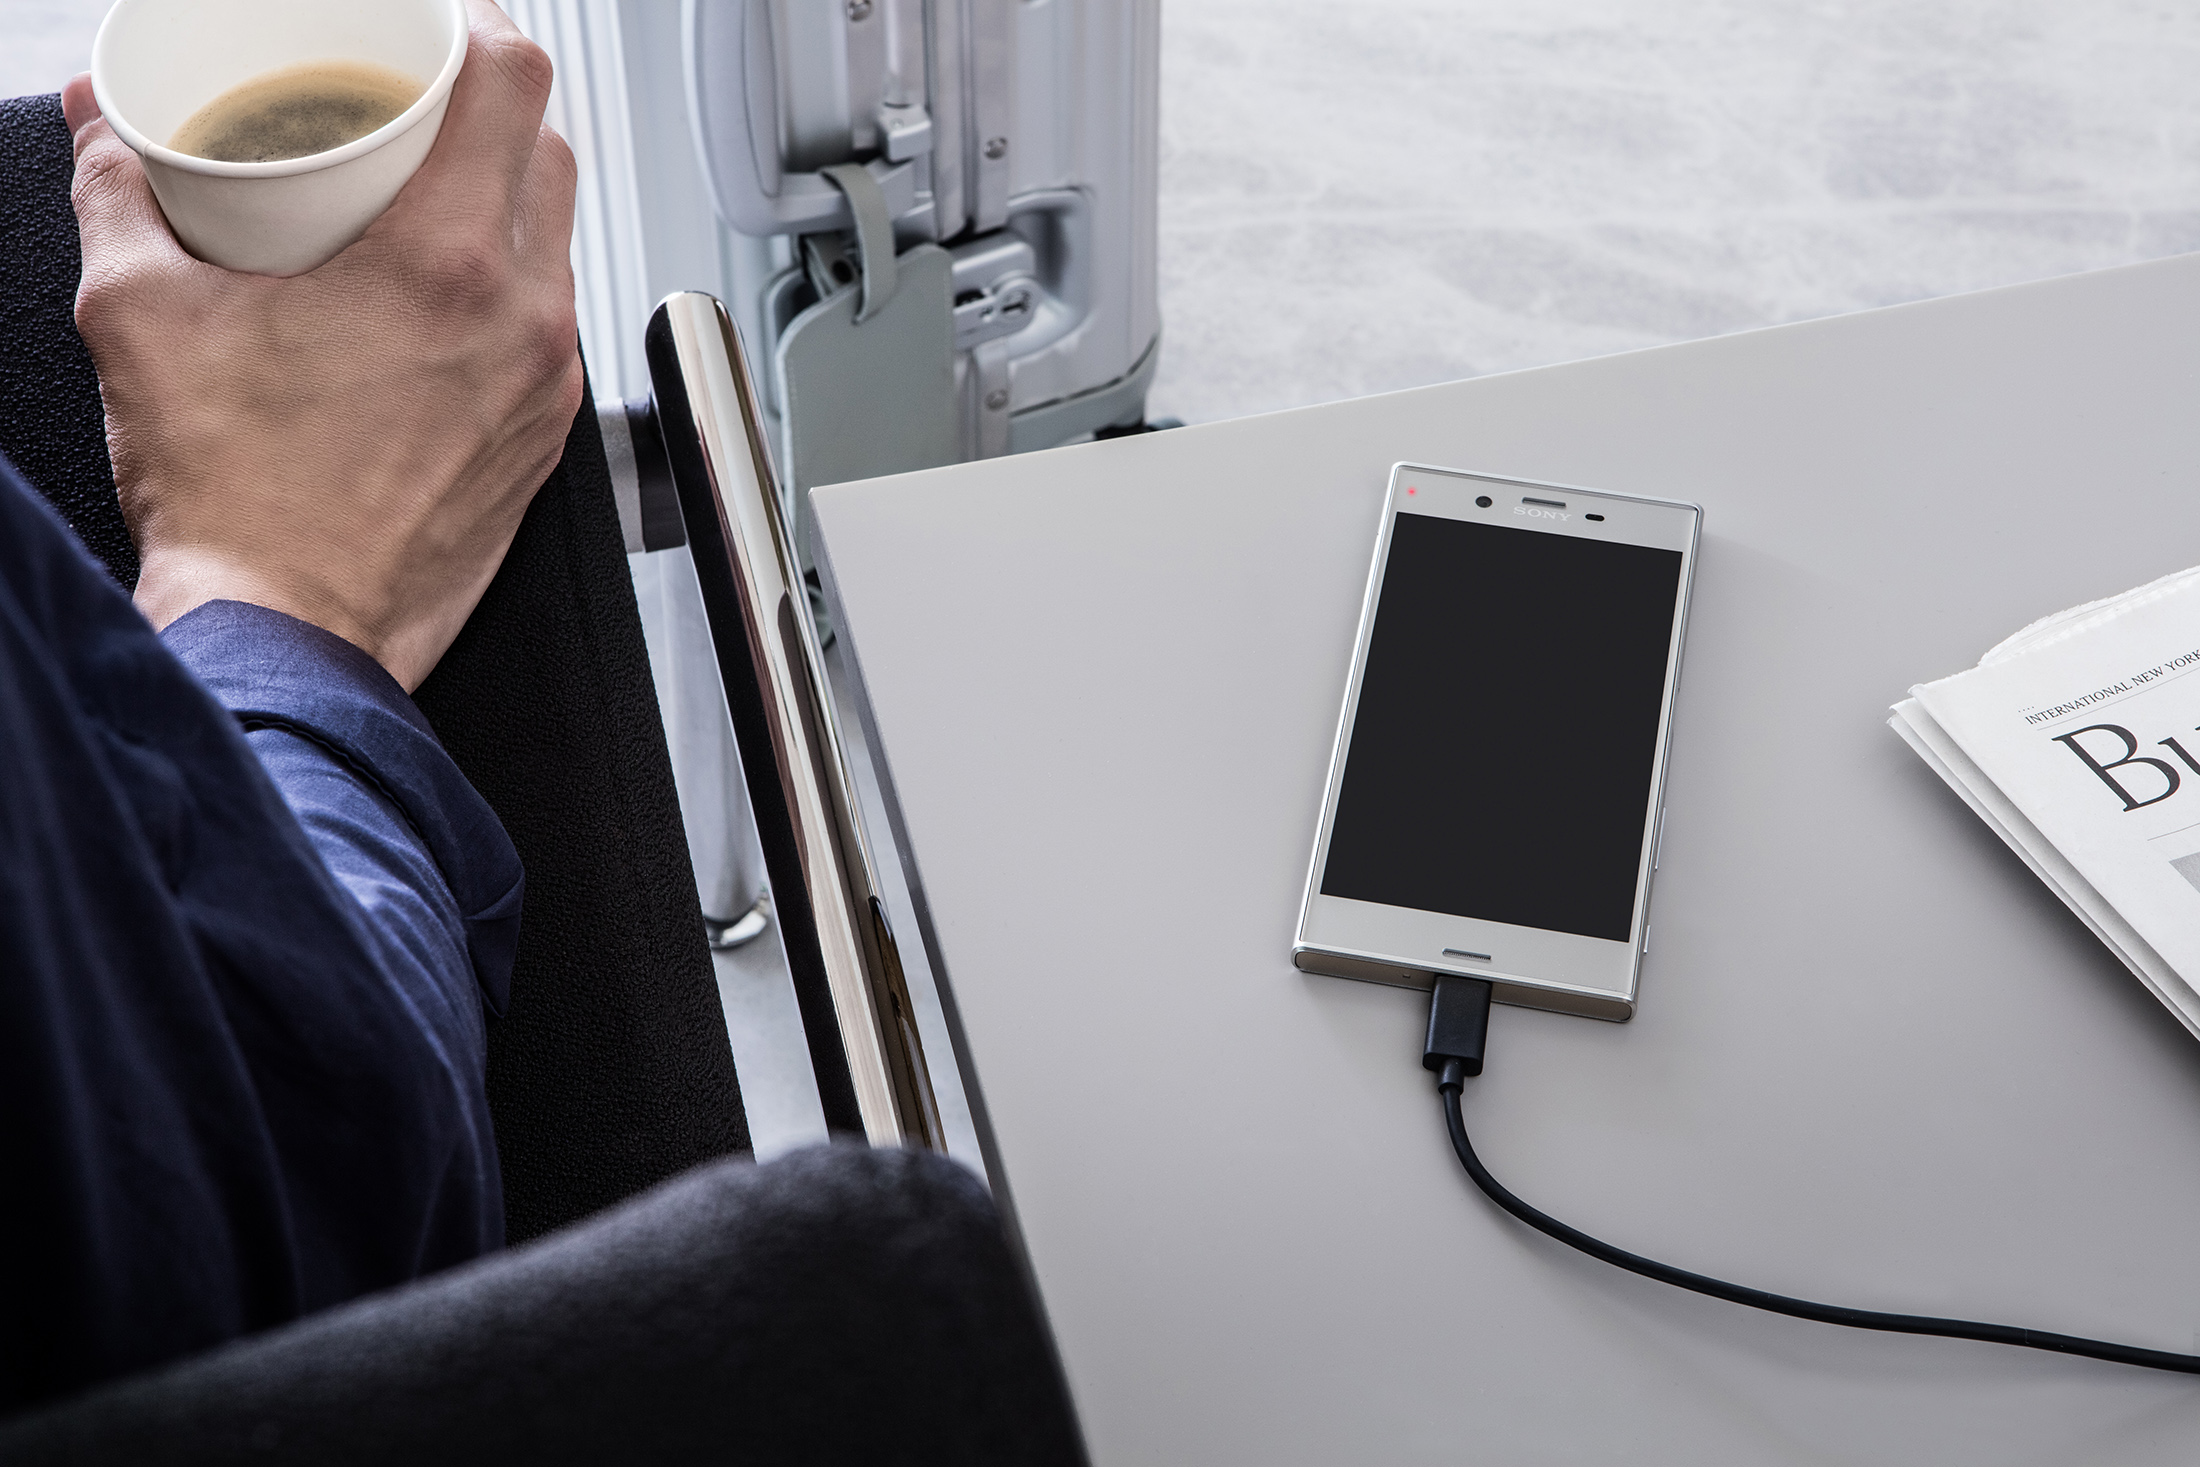 xperia-xz-with-quick-charger_eafc